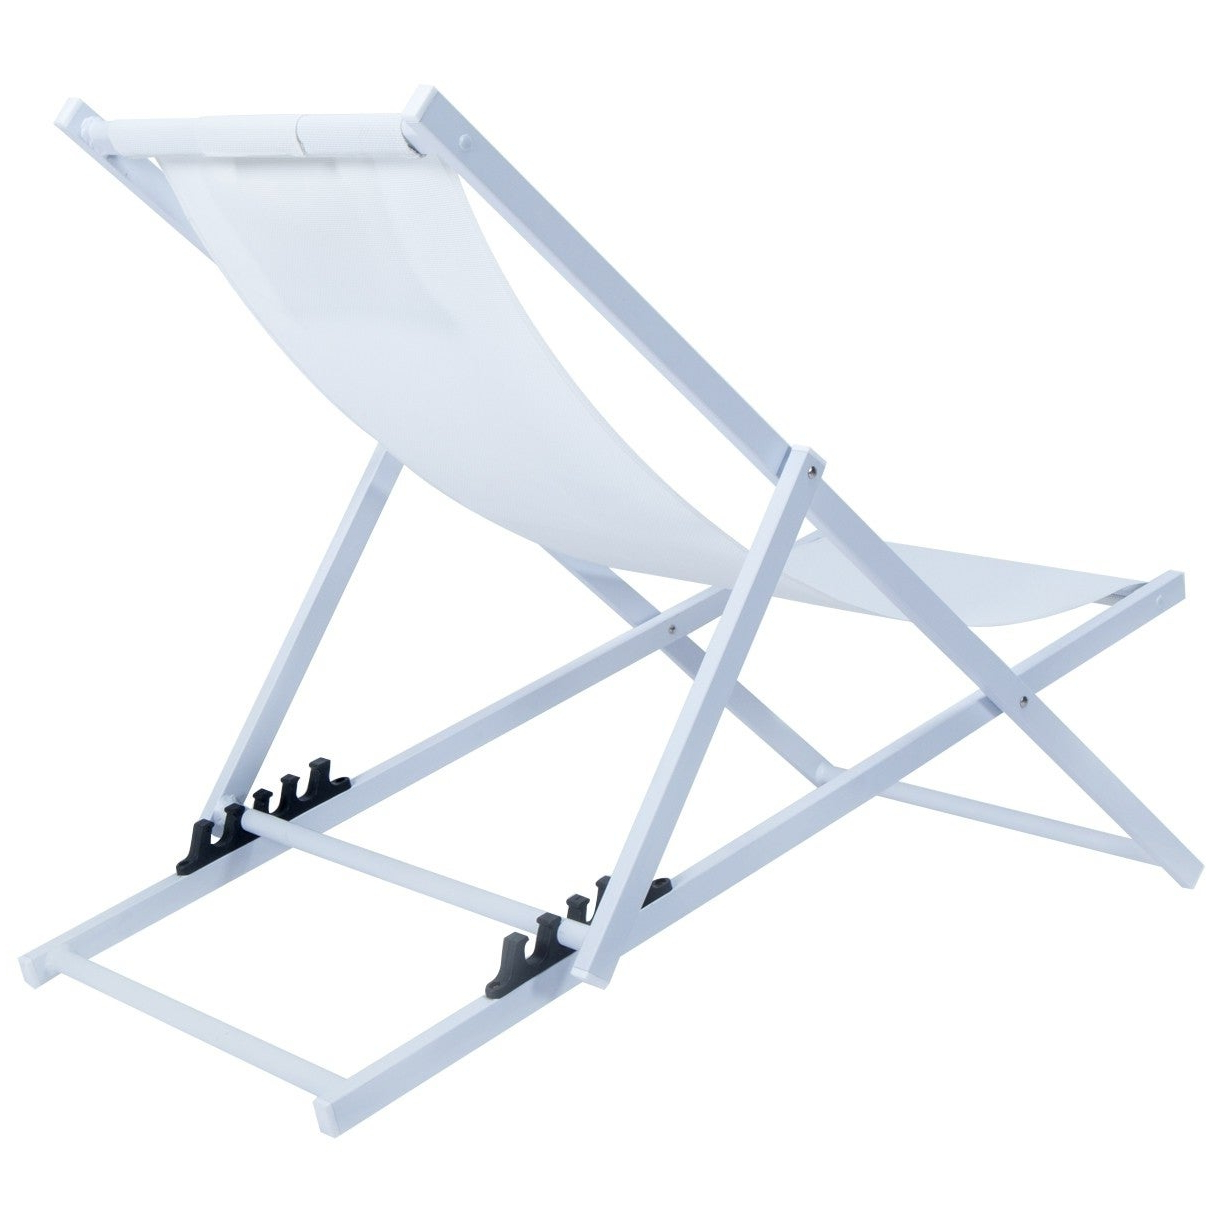 Best And Newest Leisuremod Sunset Patio Sling Folding Chair Adjustable With Headrest Regarding Sunset Patio Sling Folding Chairs With Headrest (View 7 of 25)